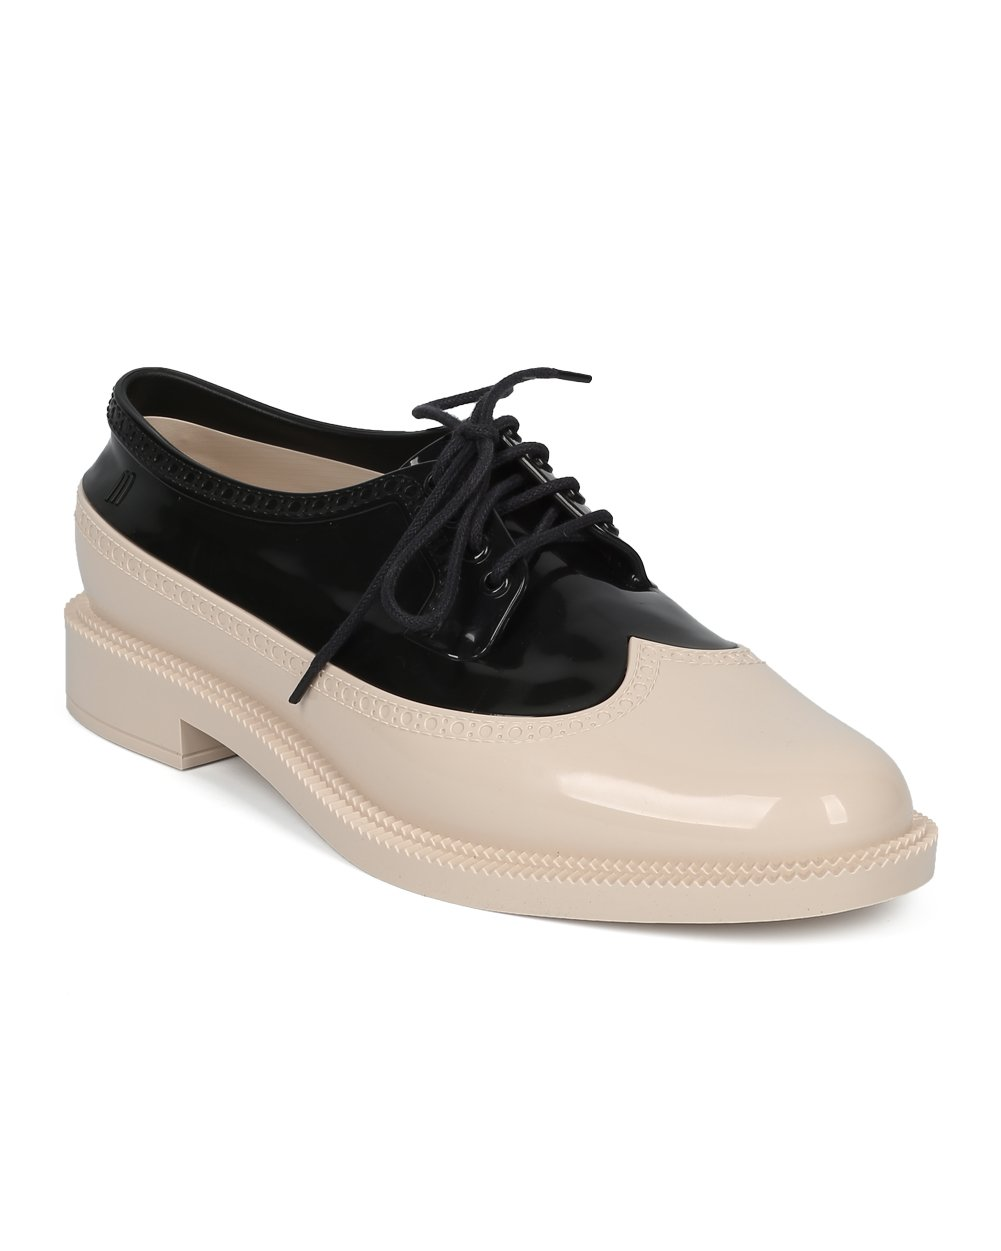 Melissa Women Lace Up Spectator - Jelly Loafer - Comfortable Casual Dressy Tuxedo Shoe - Classic Brogue by Black/Beige Jelly (Size: 7.0)